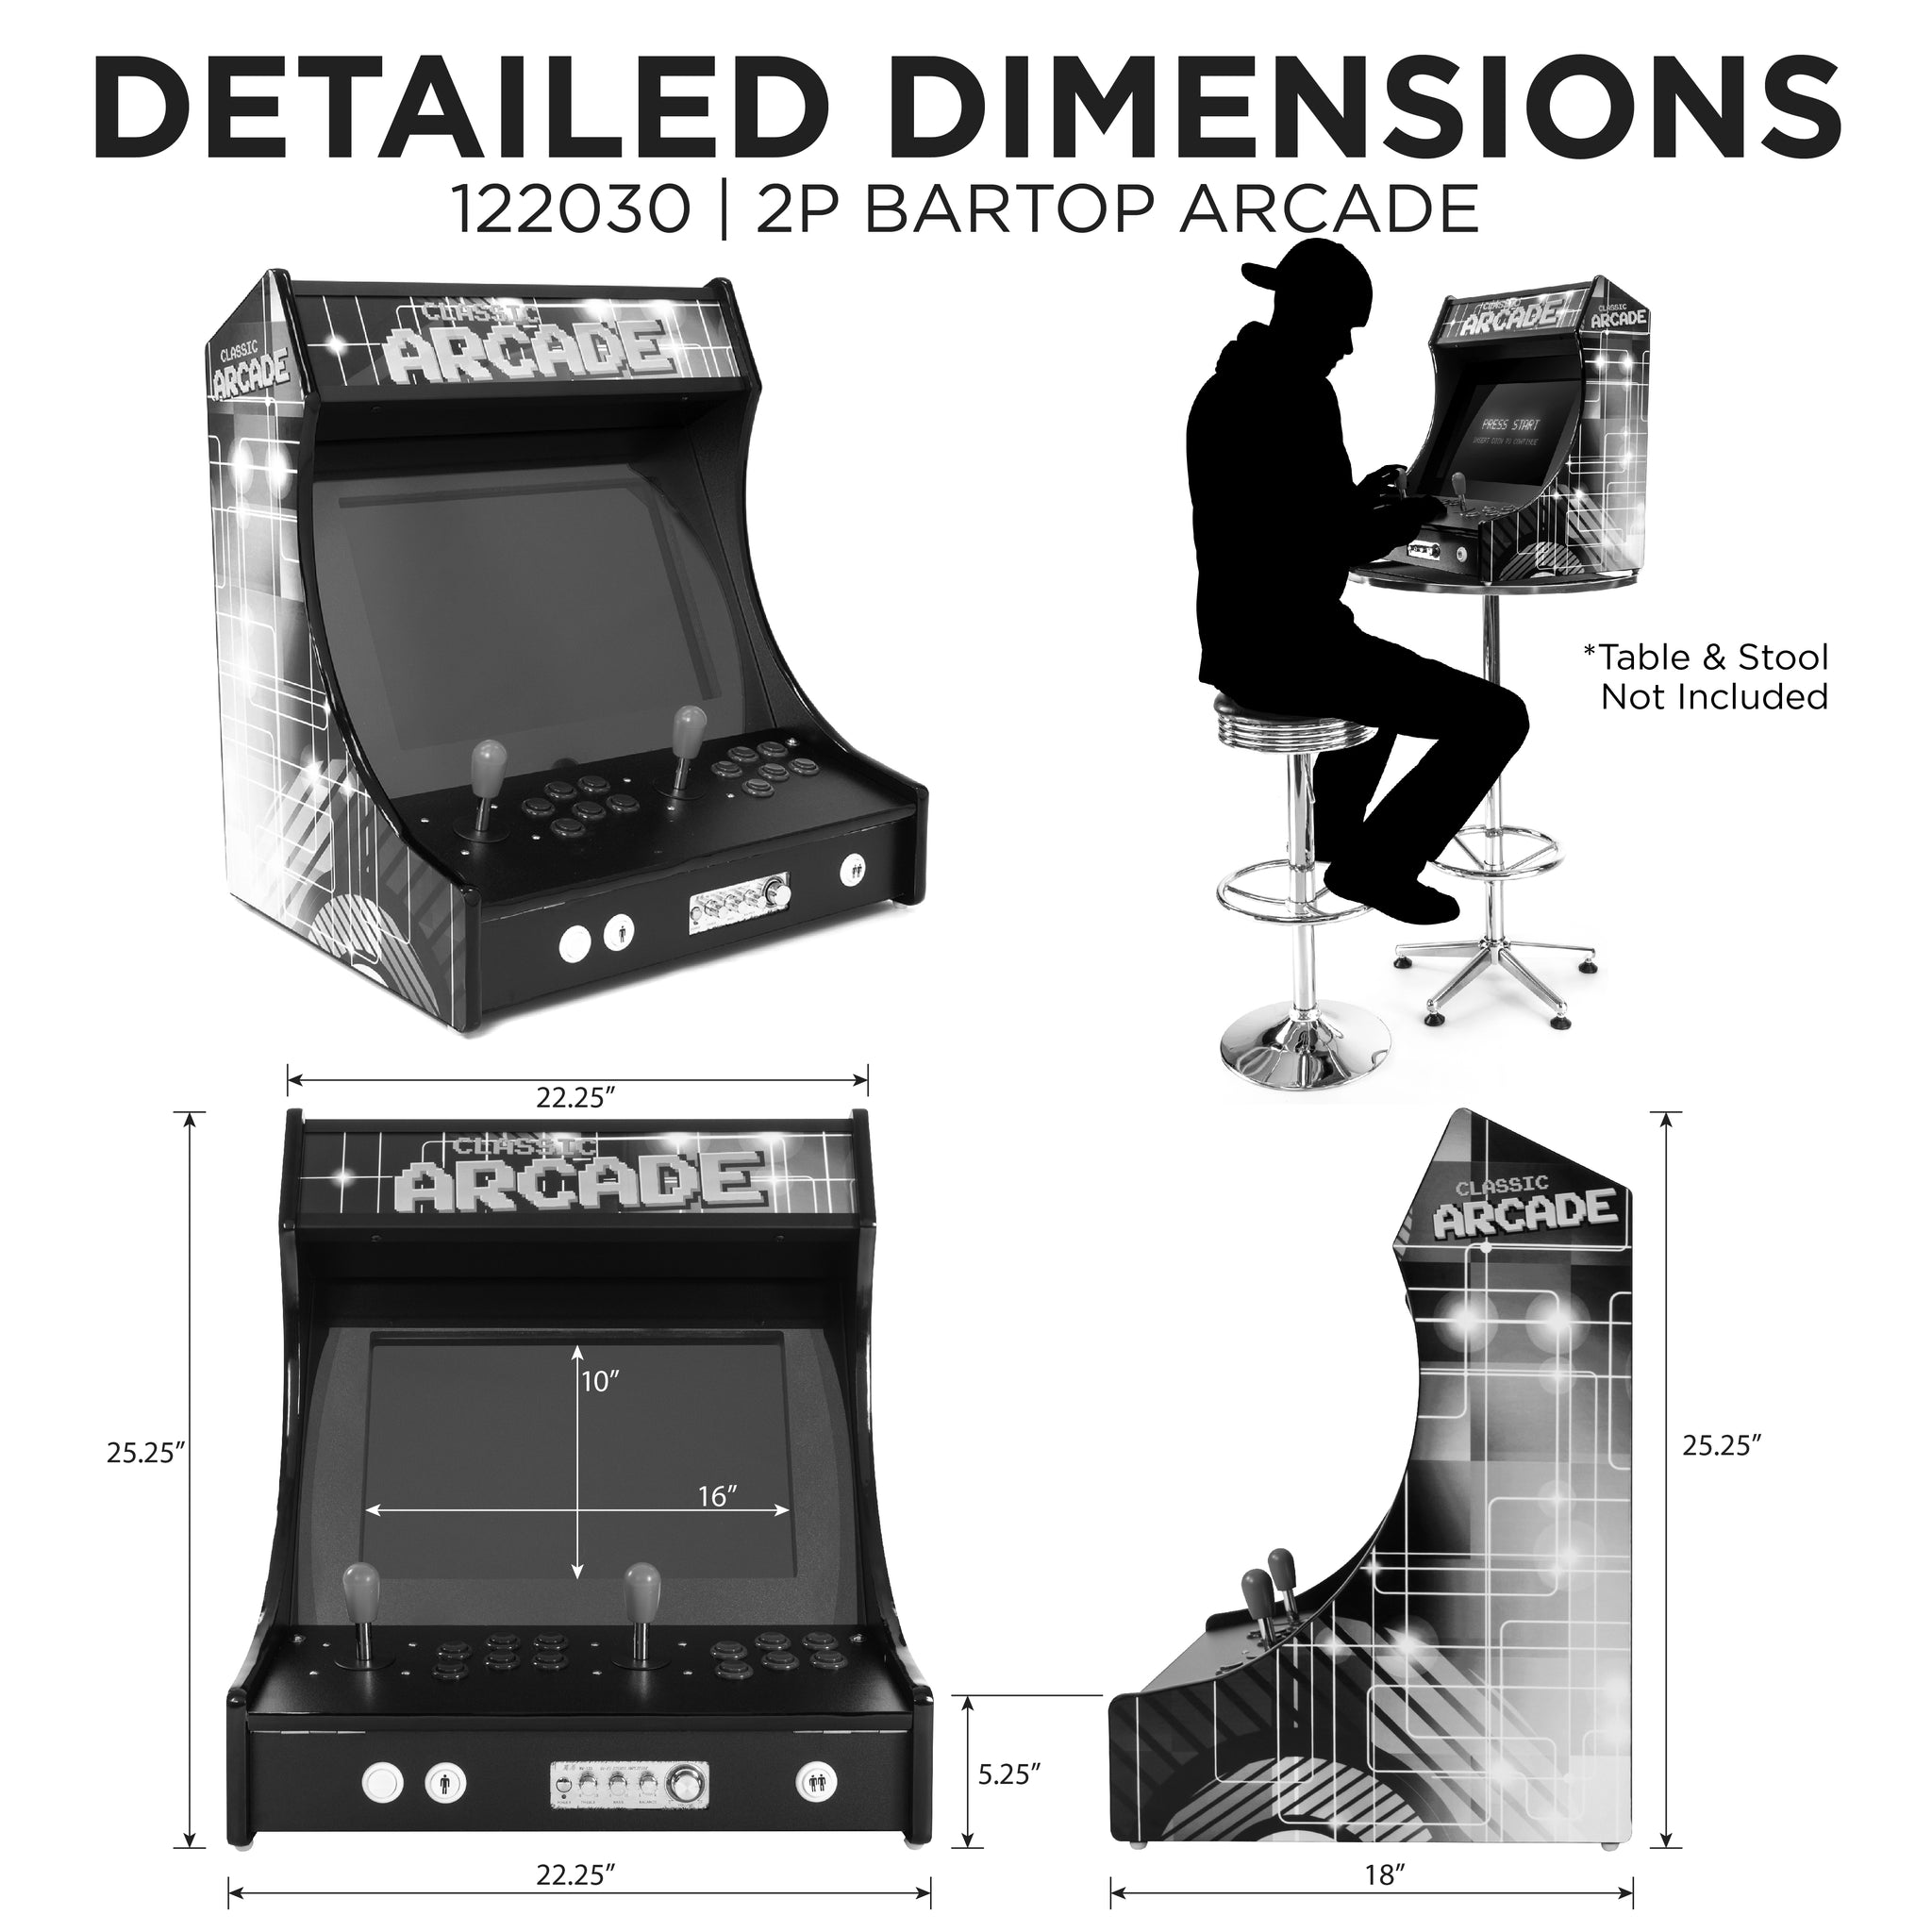 2P 3000 Games Mini Upright Arcade Dimensions